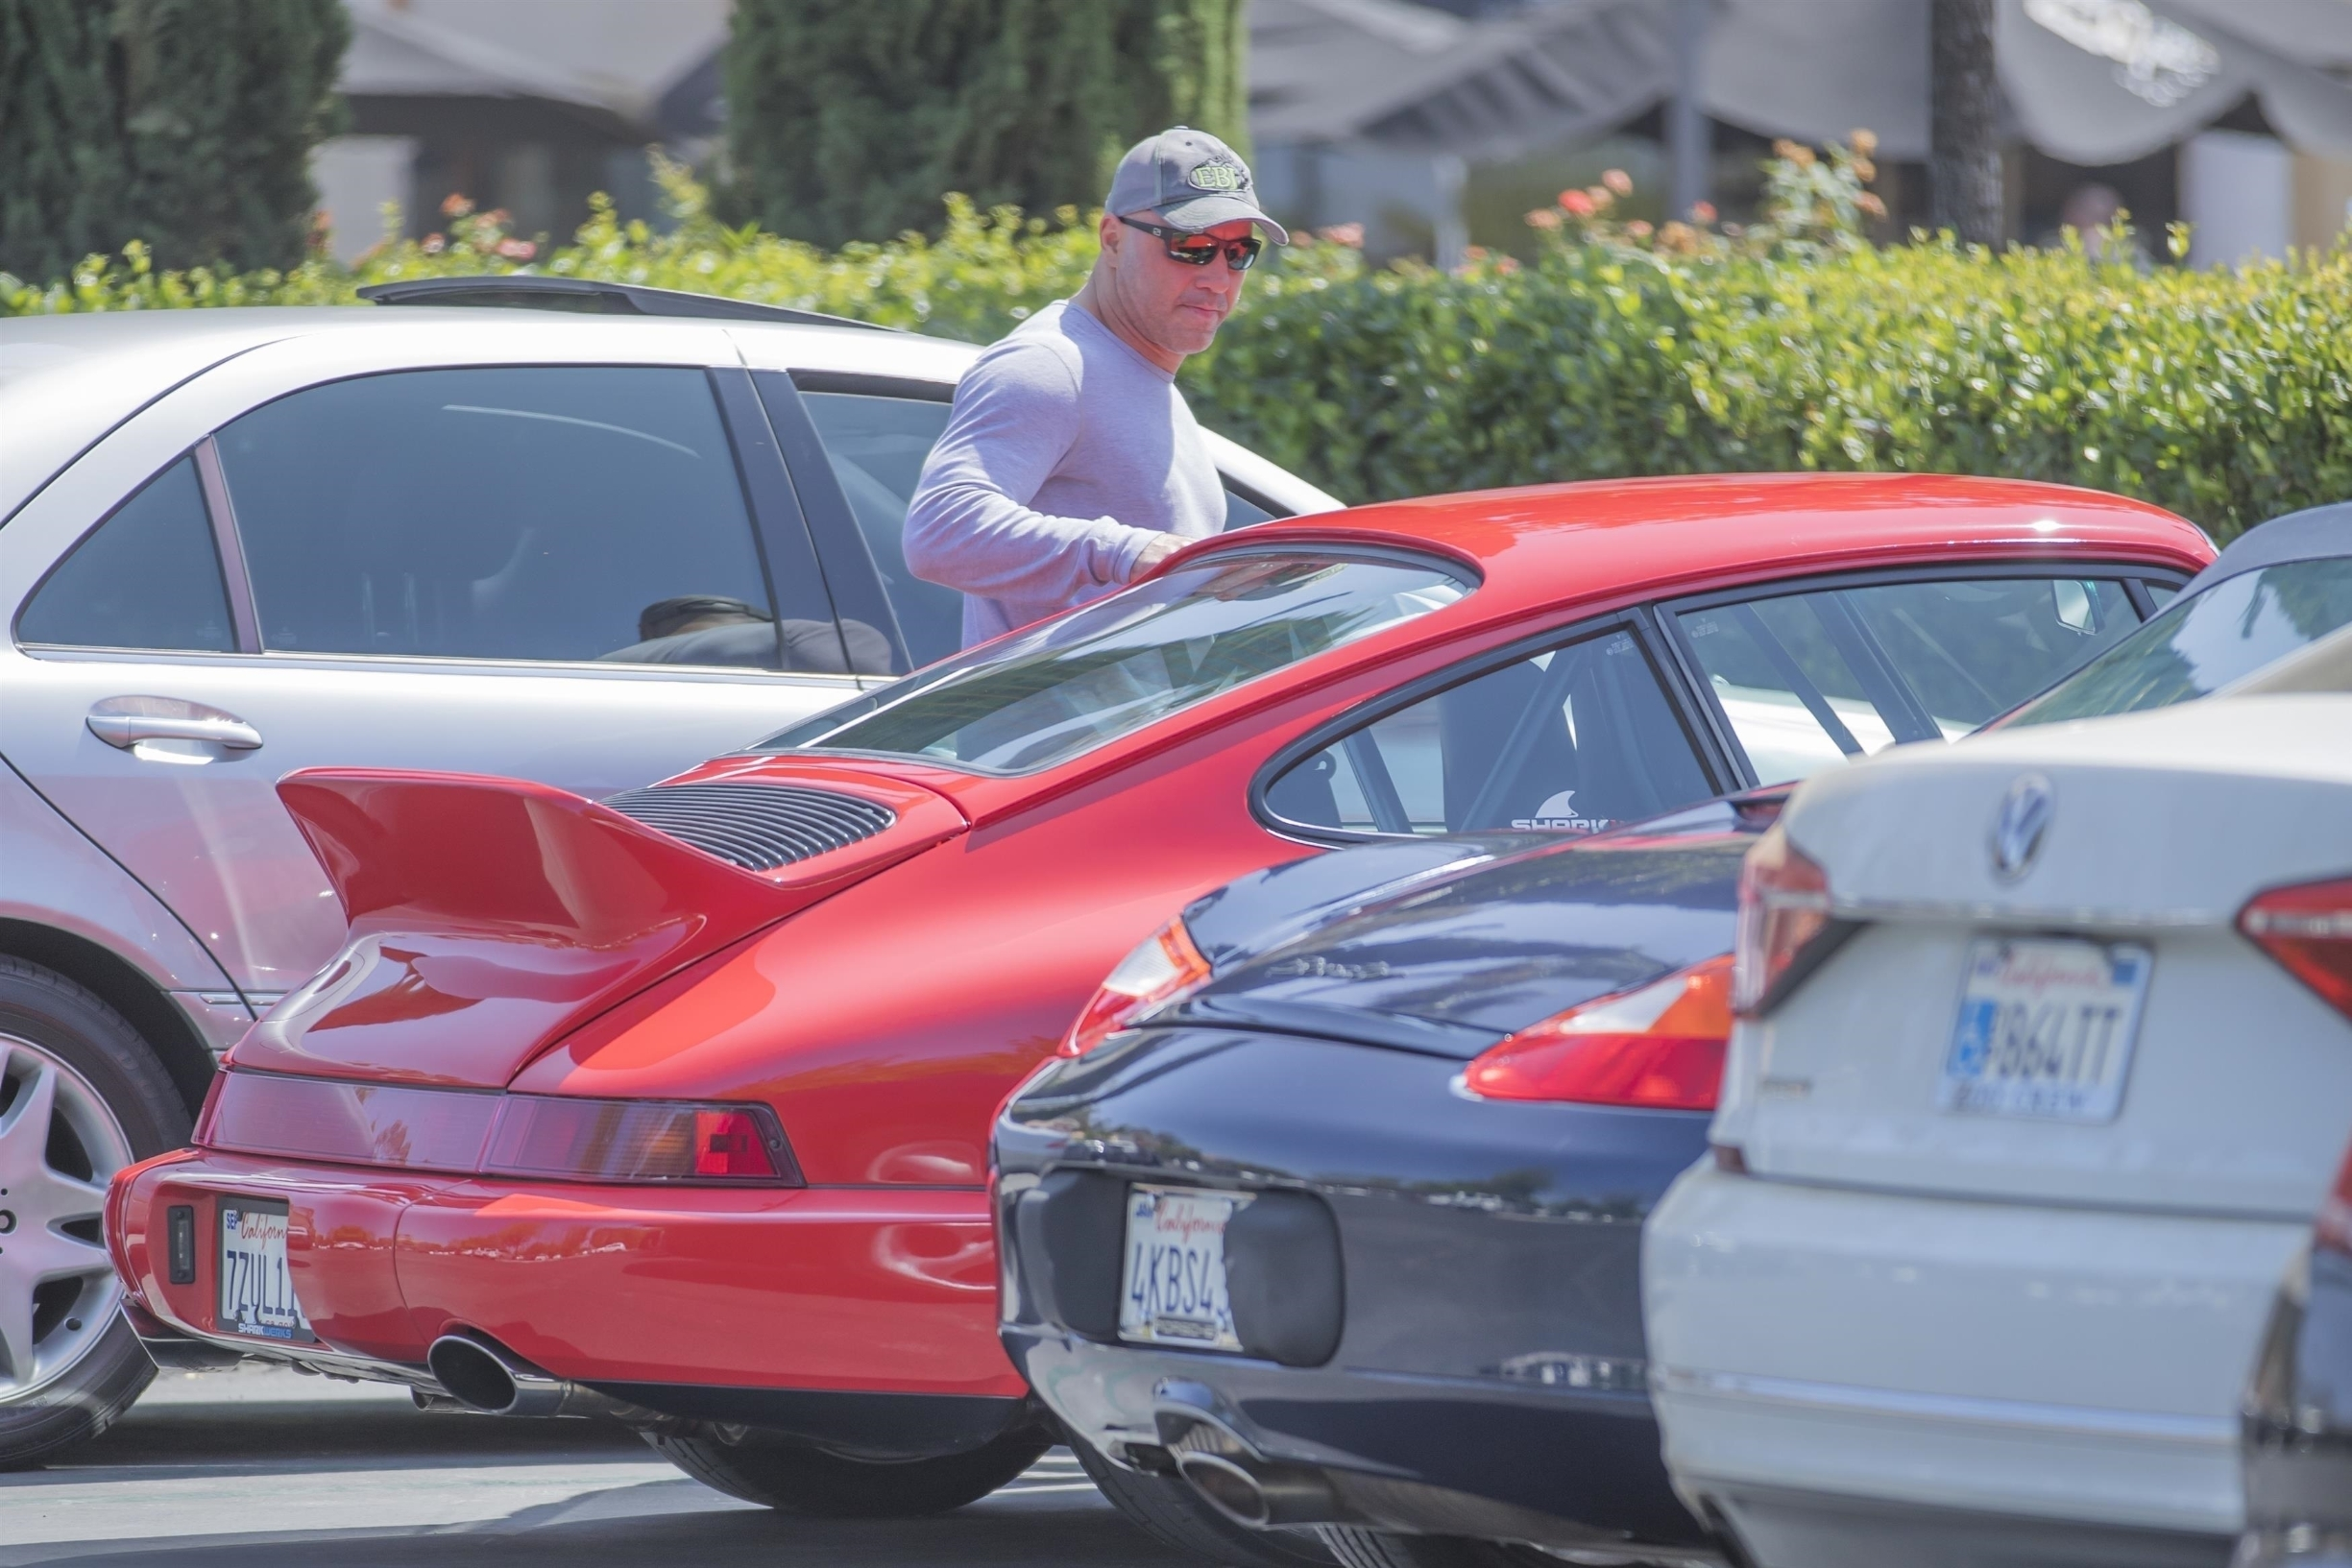 Calabasas, CA  - *EXCLUSIVE*  - Joe Rogan was seen buying yet another gift from Polacheck's presumably for his model wife, who he's been seen with at the store on past occasions. Expensive taste: Joe drove off in a vintage 250K red Porsche.  Pictured: Joe Rogan  BACKGRID USA 27 AUGUST 2018,Image: 384229389, License: Rights-managed, Restrictions: , Model Release: no, Credit line: IXOLA / BACKGRID / Backgrid USA / Profimedia